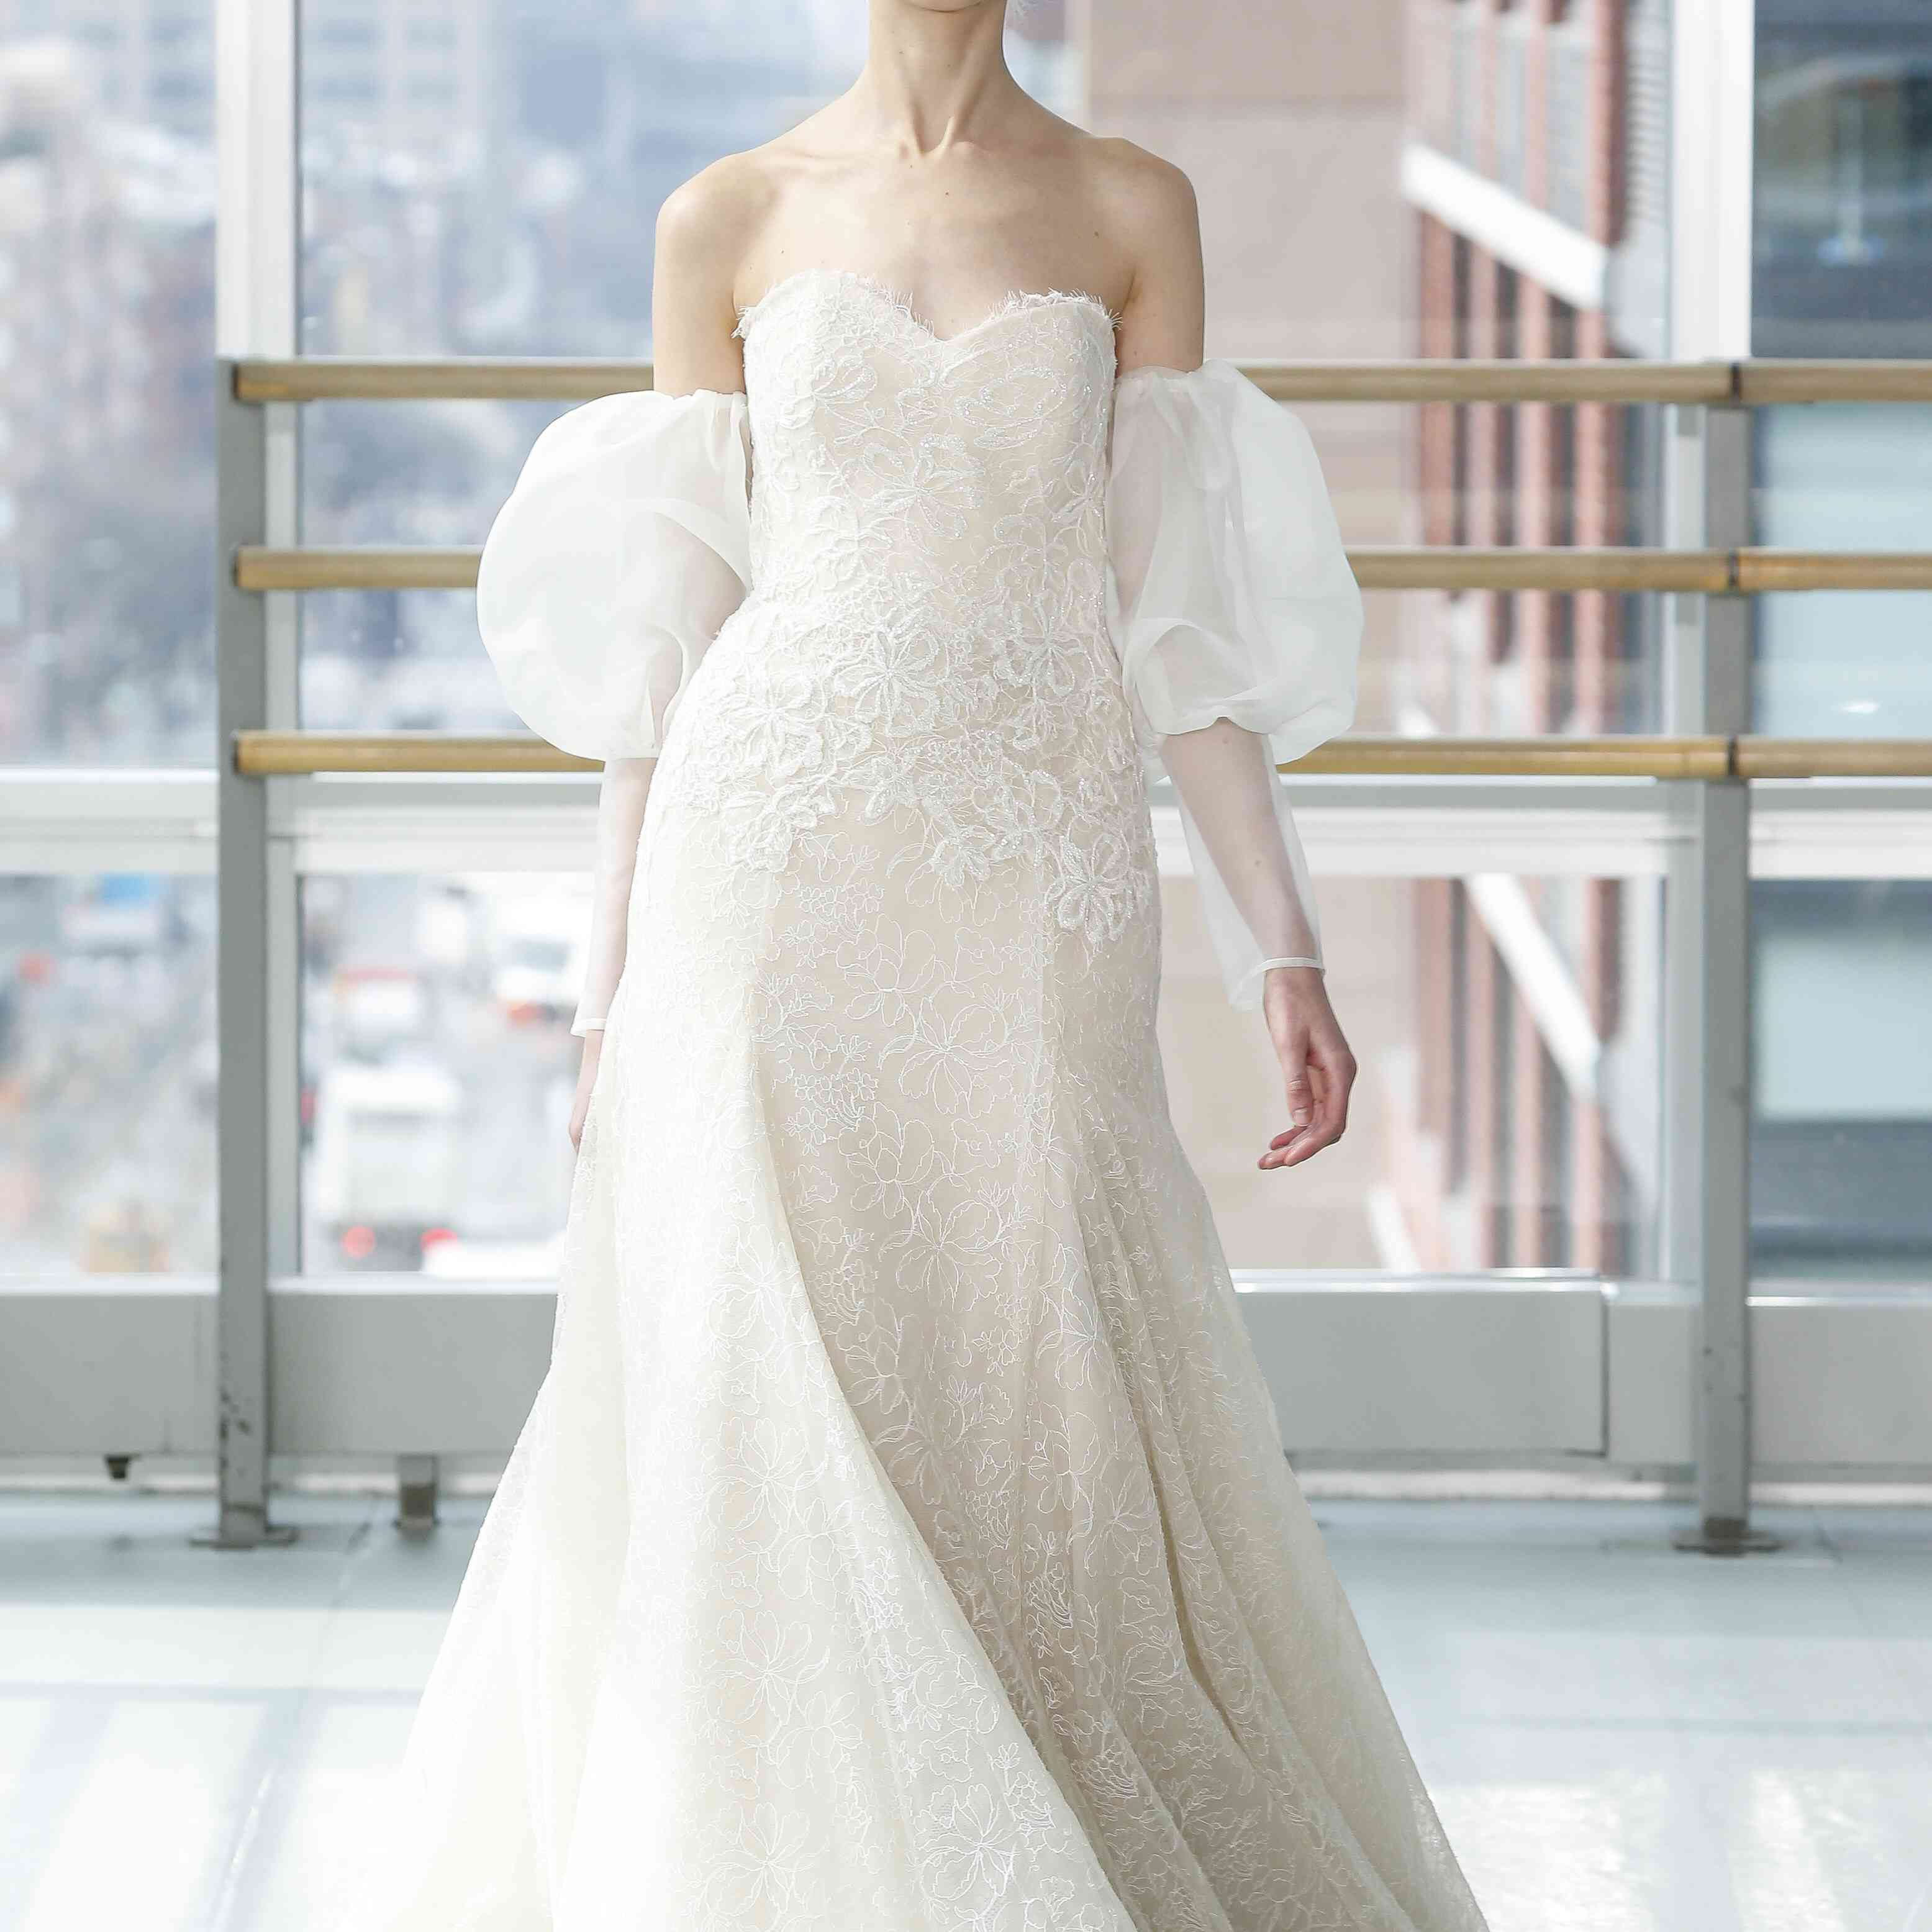 Gallery New Mira Zwillinger Wedding Dresses Spring 2019: Gracy Accad Bridal Spring 2019